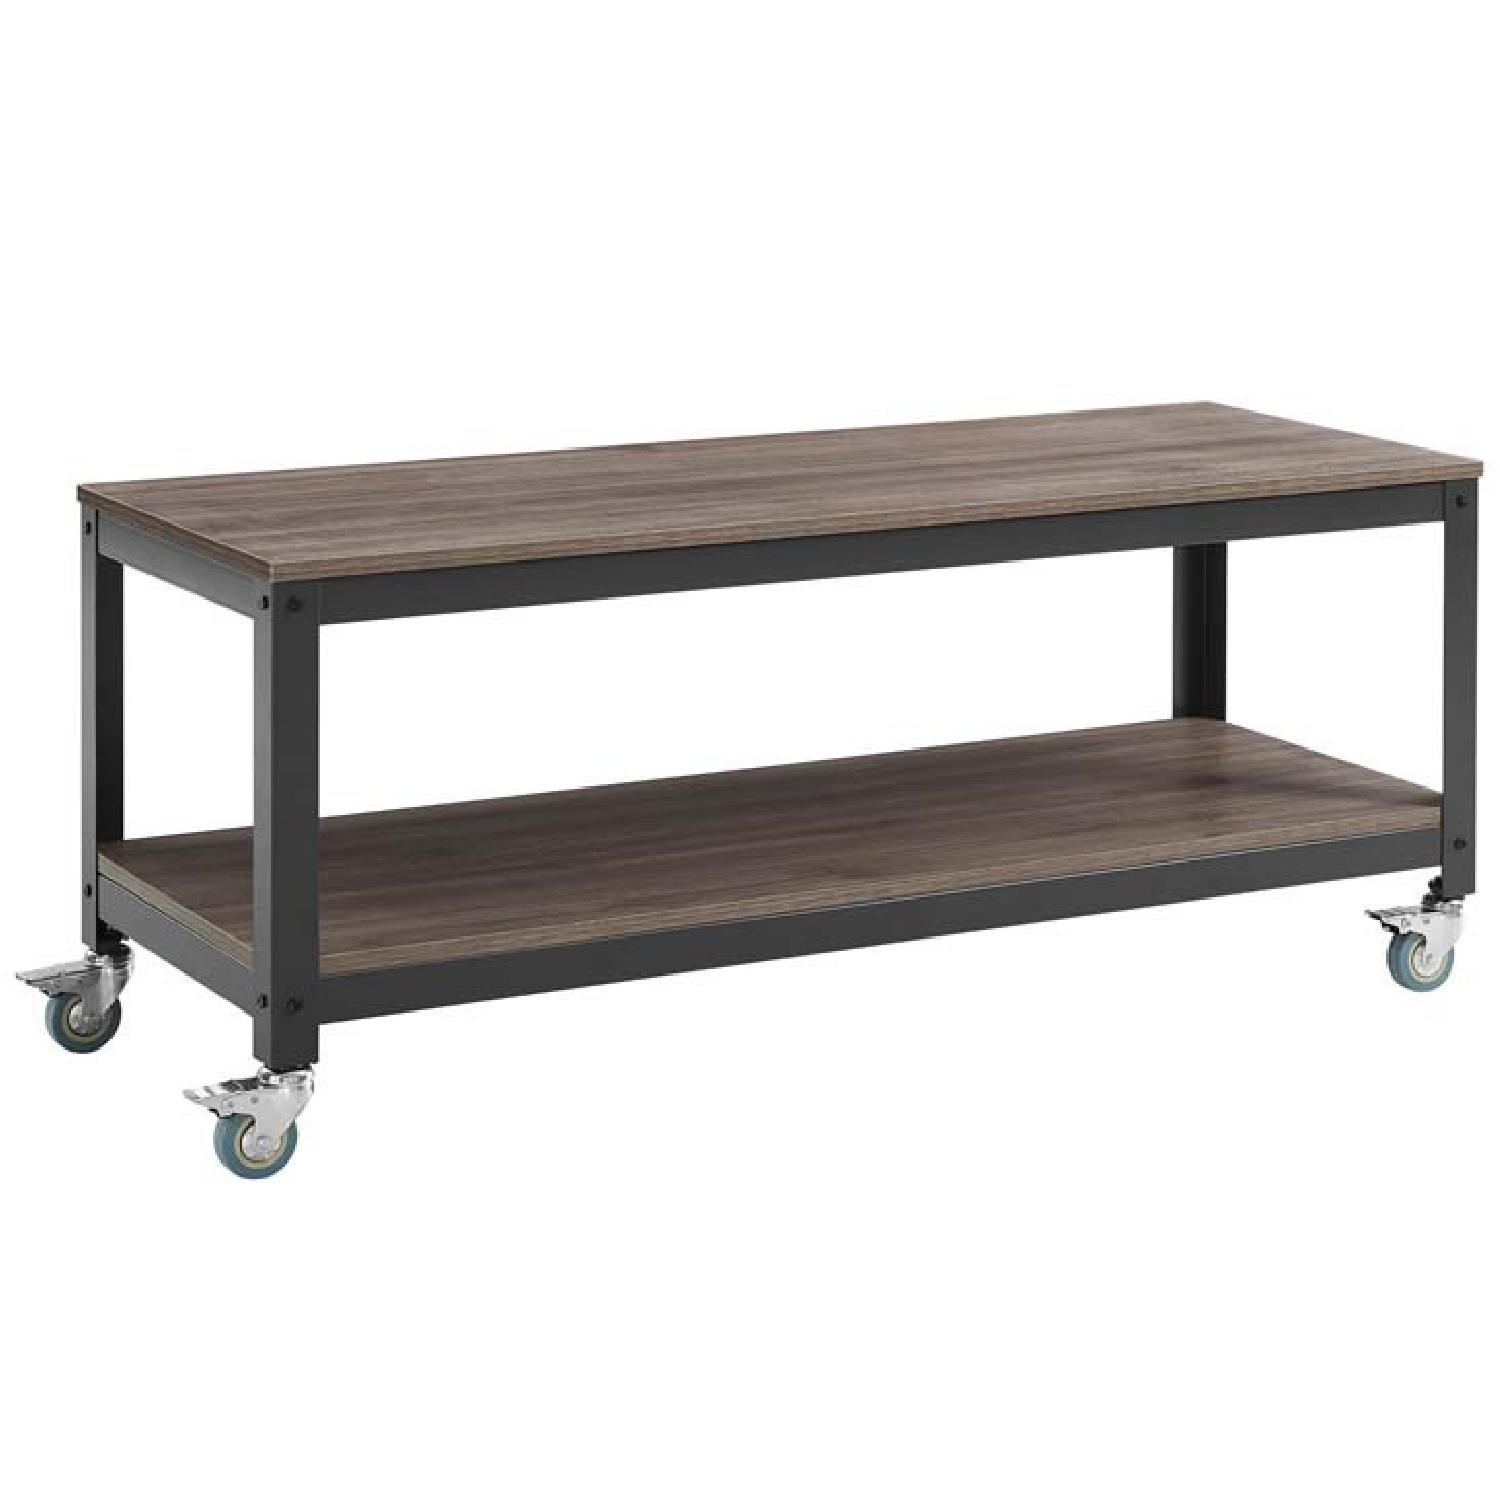 Modern Industrial Serving/TV Stand In Gray Walnut